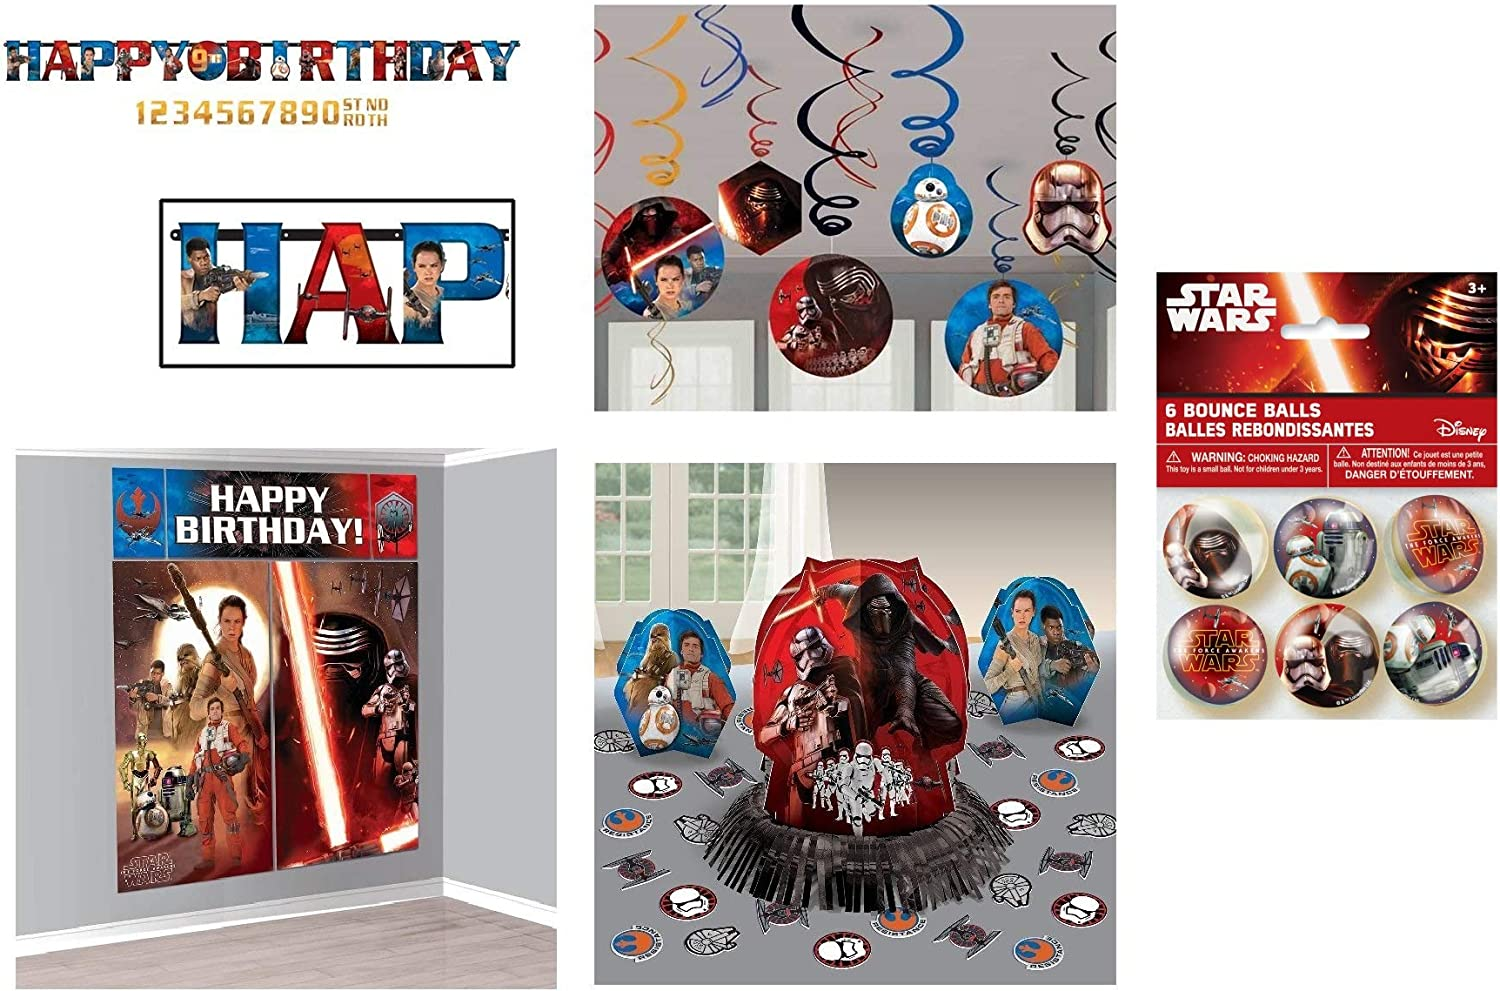 Star Wars Birthday Party Decoration Bundle includes Banner, Wall Poster Scene Setter, Swirl Decoration, Table Decor Kit